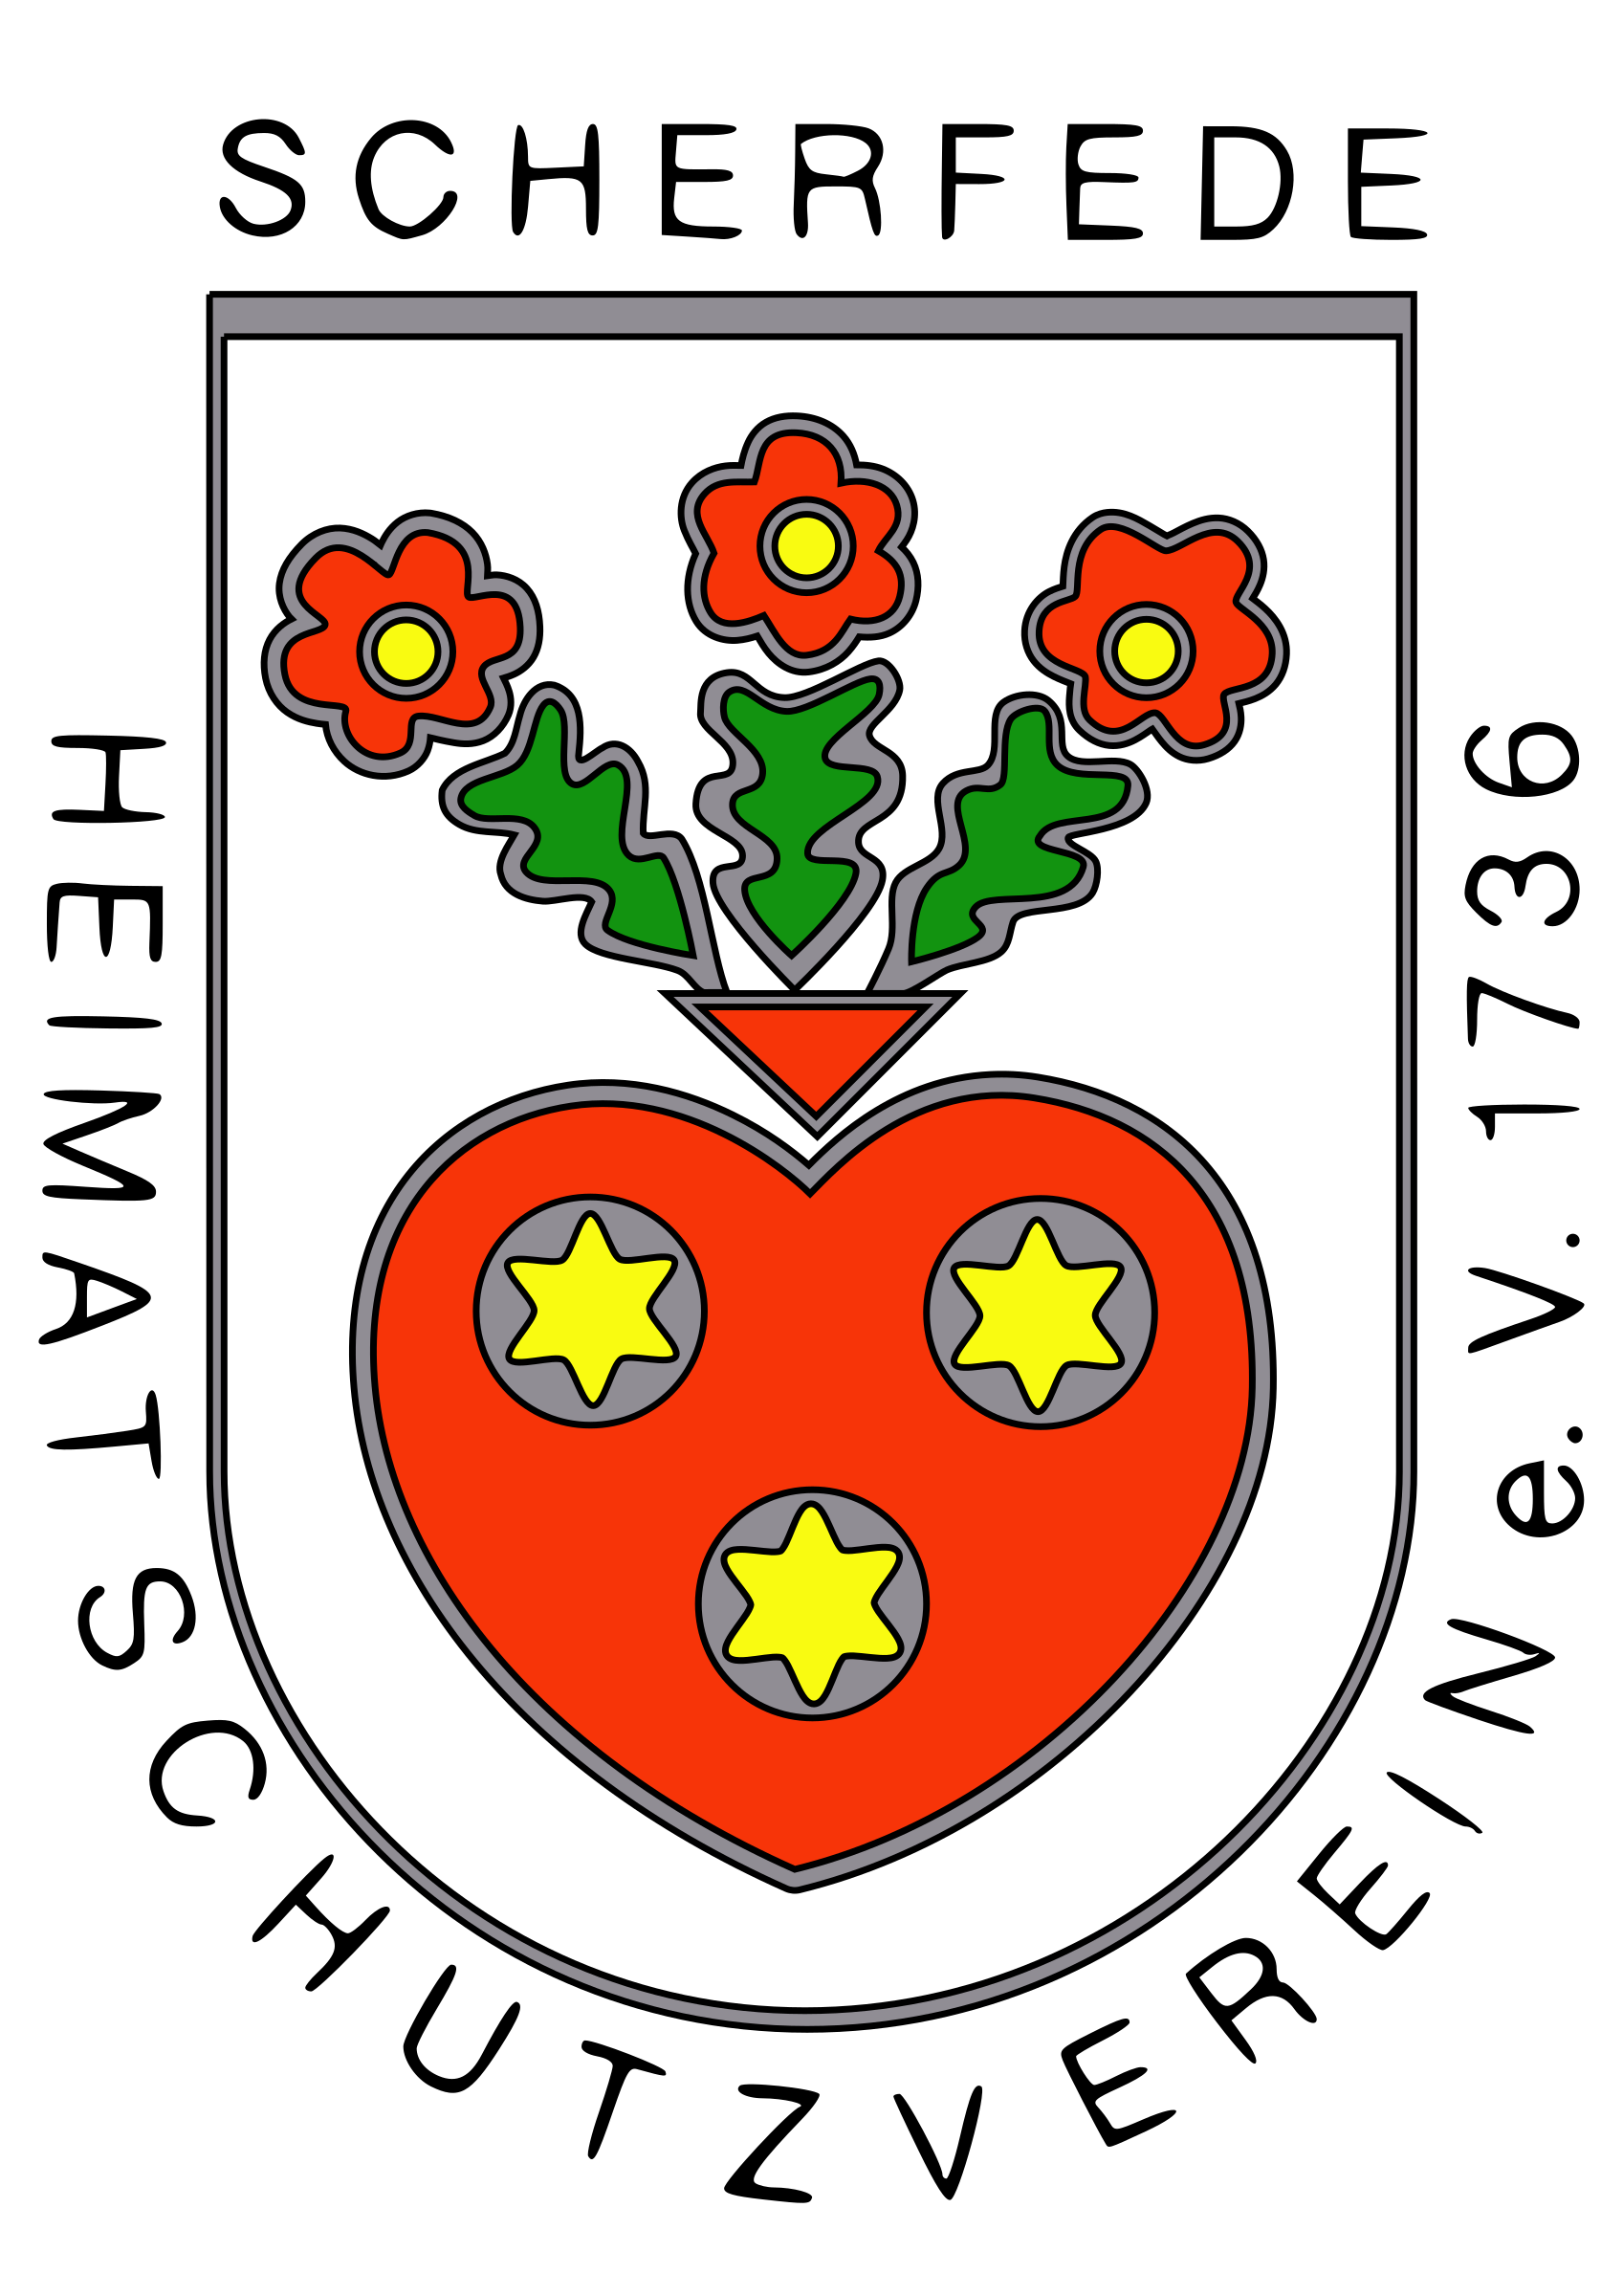 hsv coat of arms by zwiebus